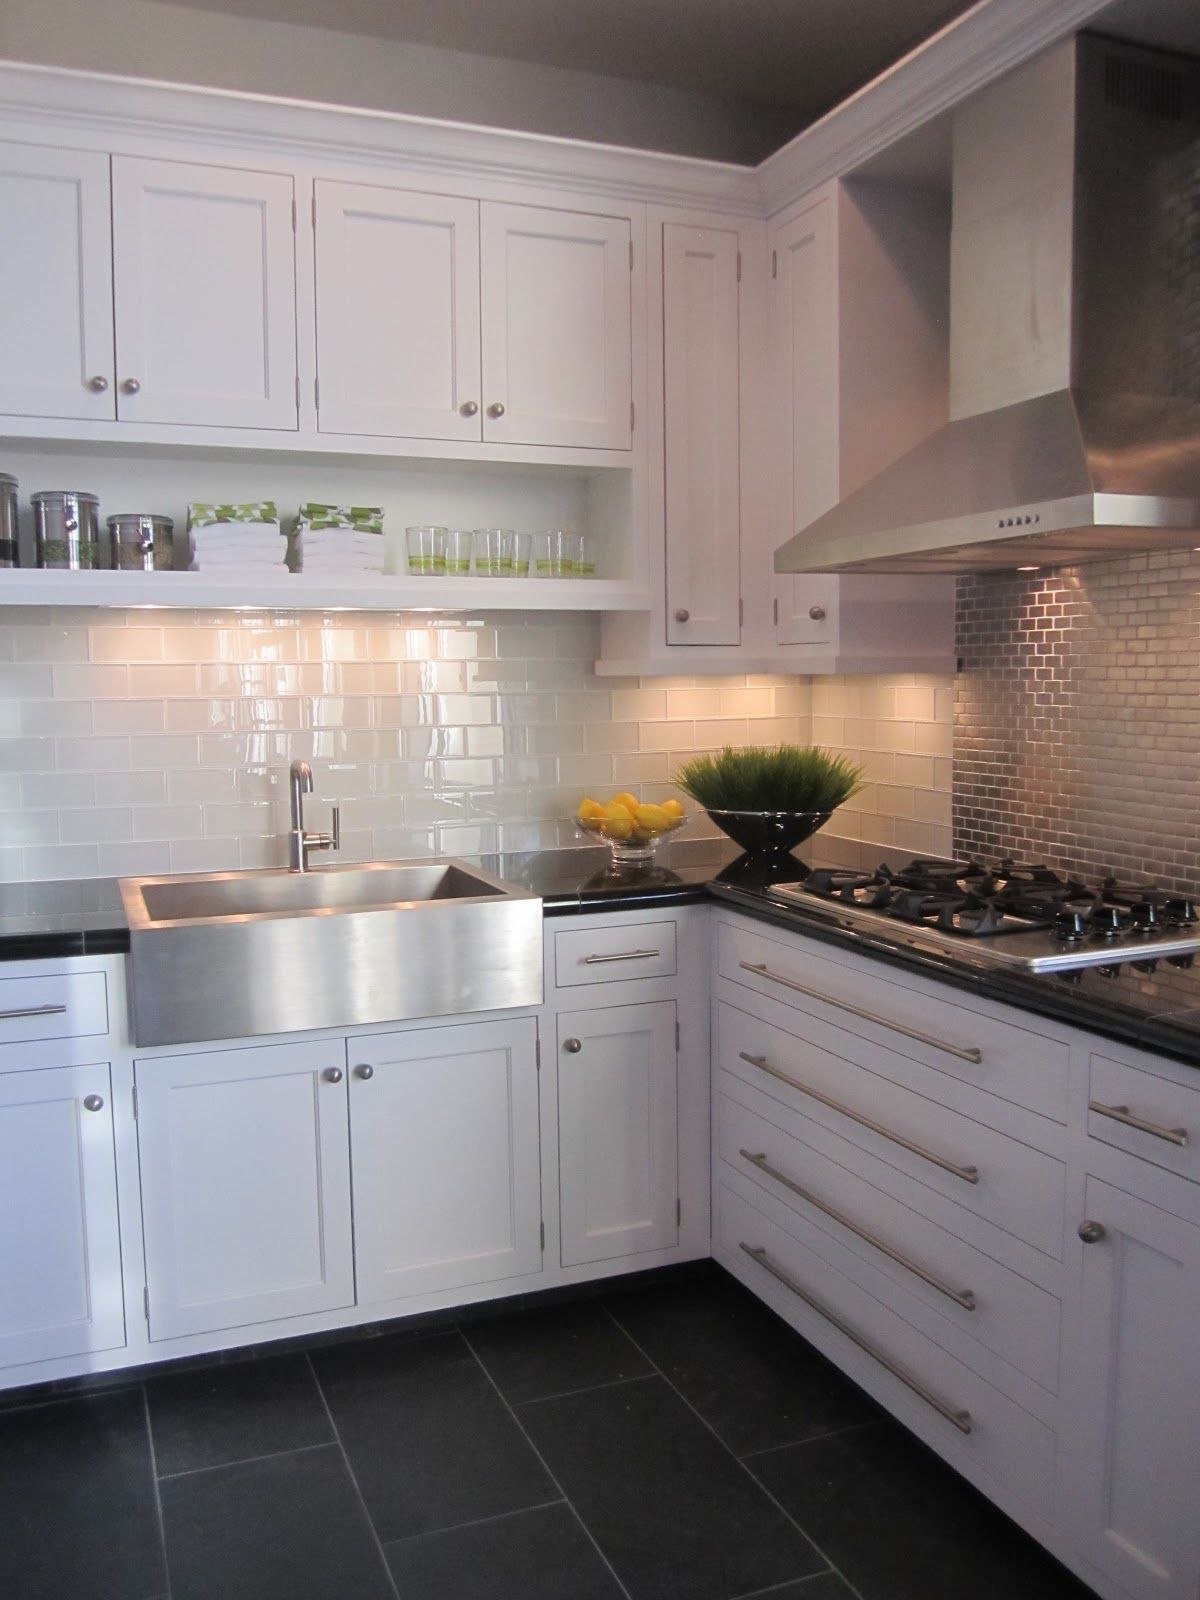 Kitchen white cabinet dark grey floor tiles lovely for White cabinets white floor